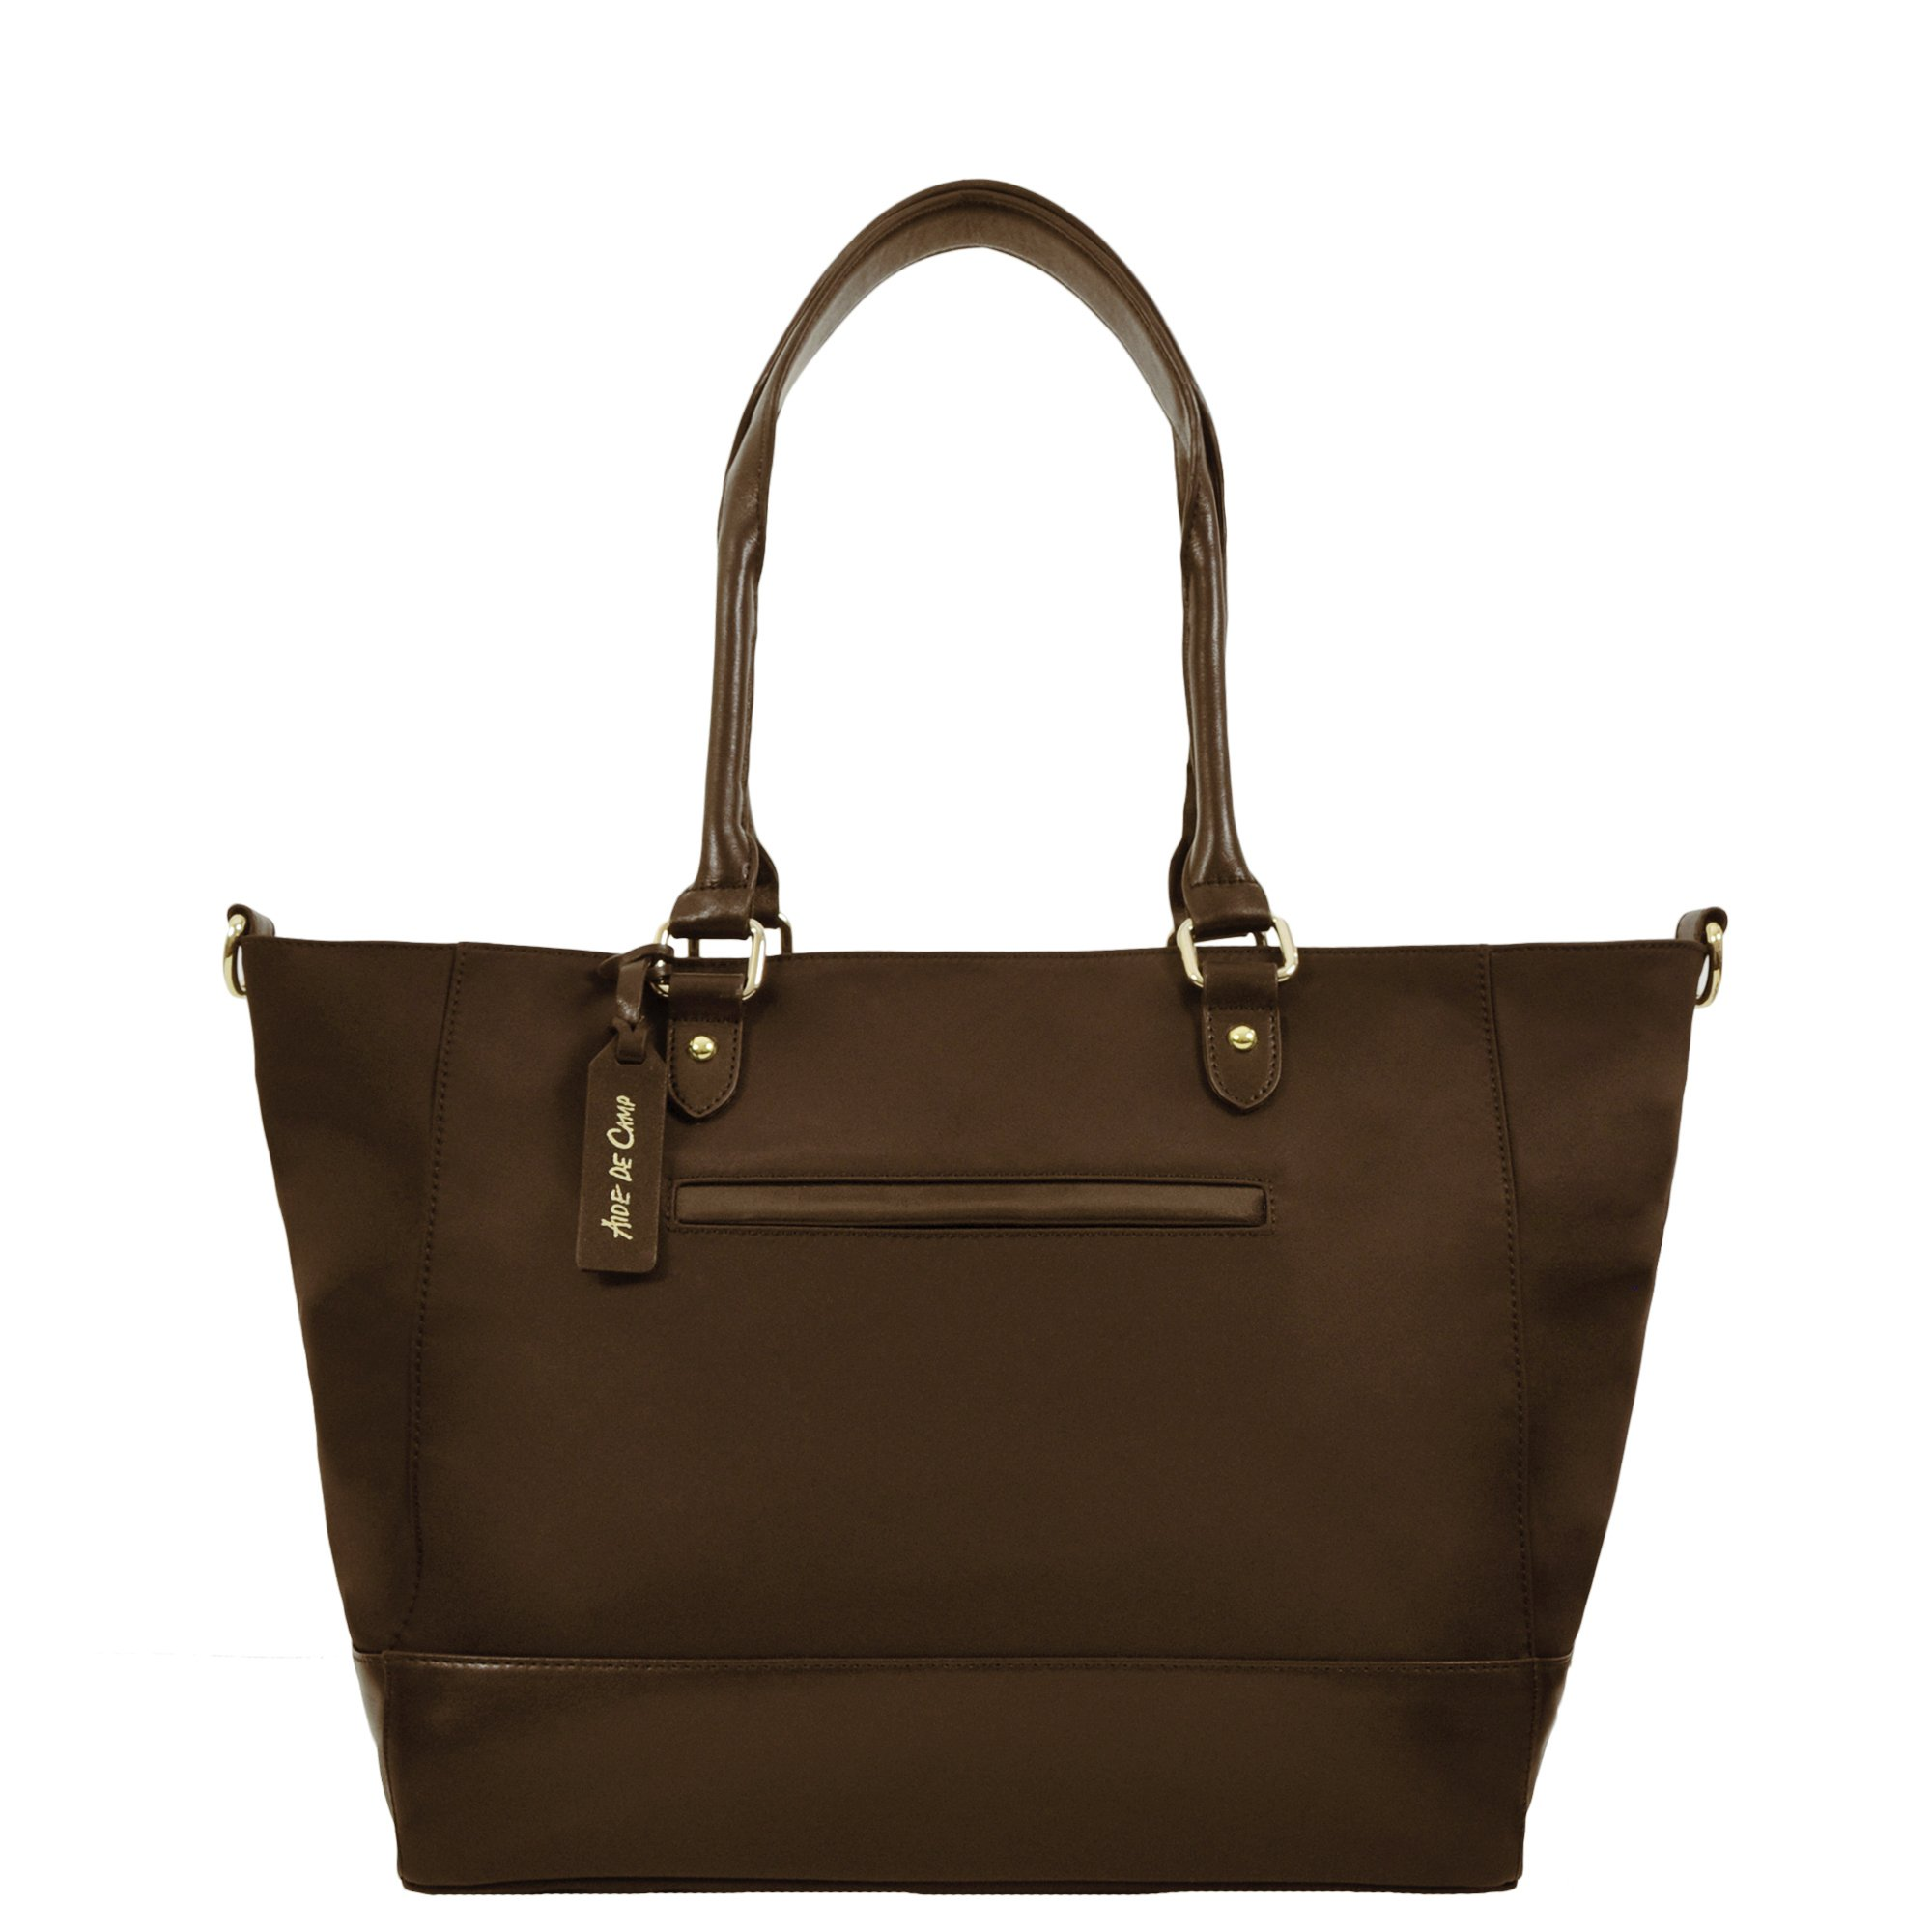 Aide de Camp - Valencia Travel Tote Bag, with Two Bags in One and Removable Camera Insert (Sable Brown)